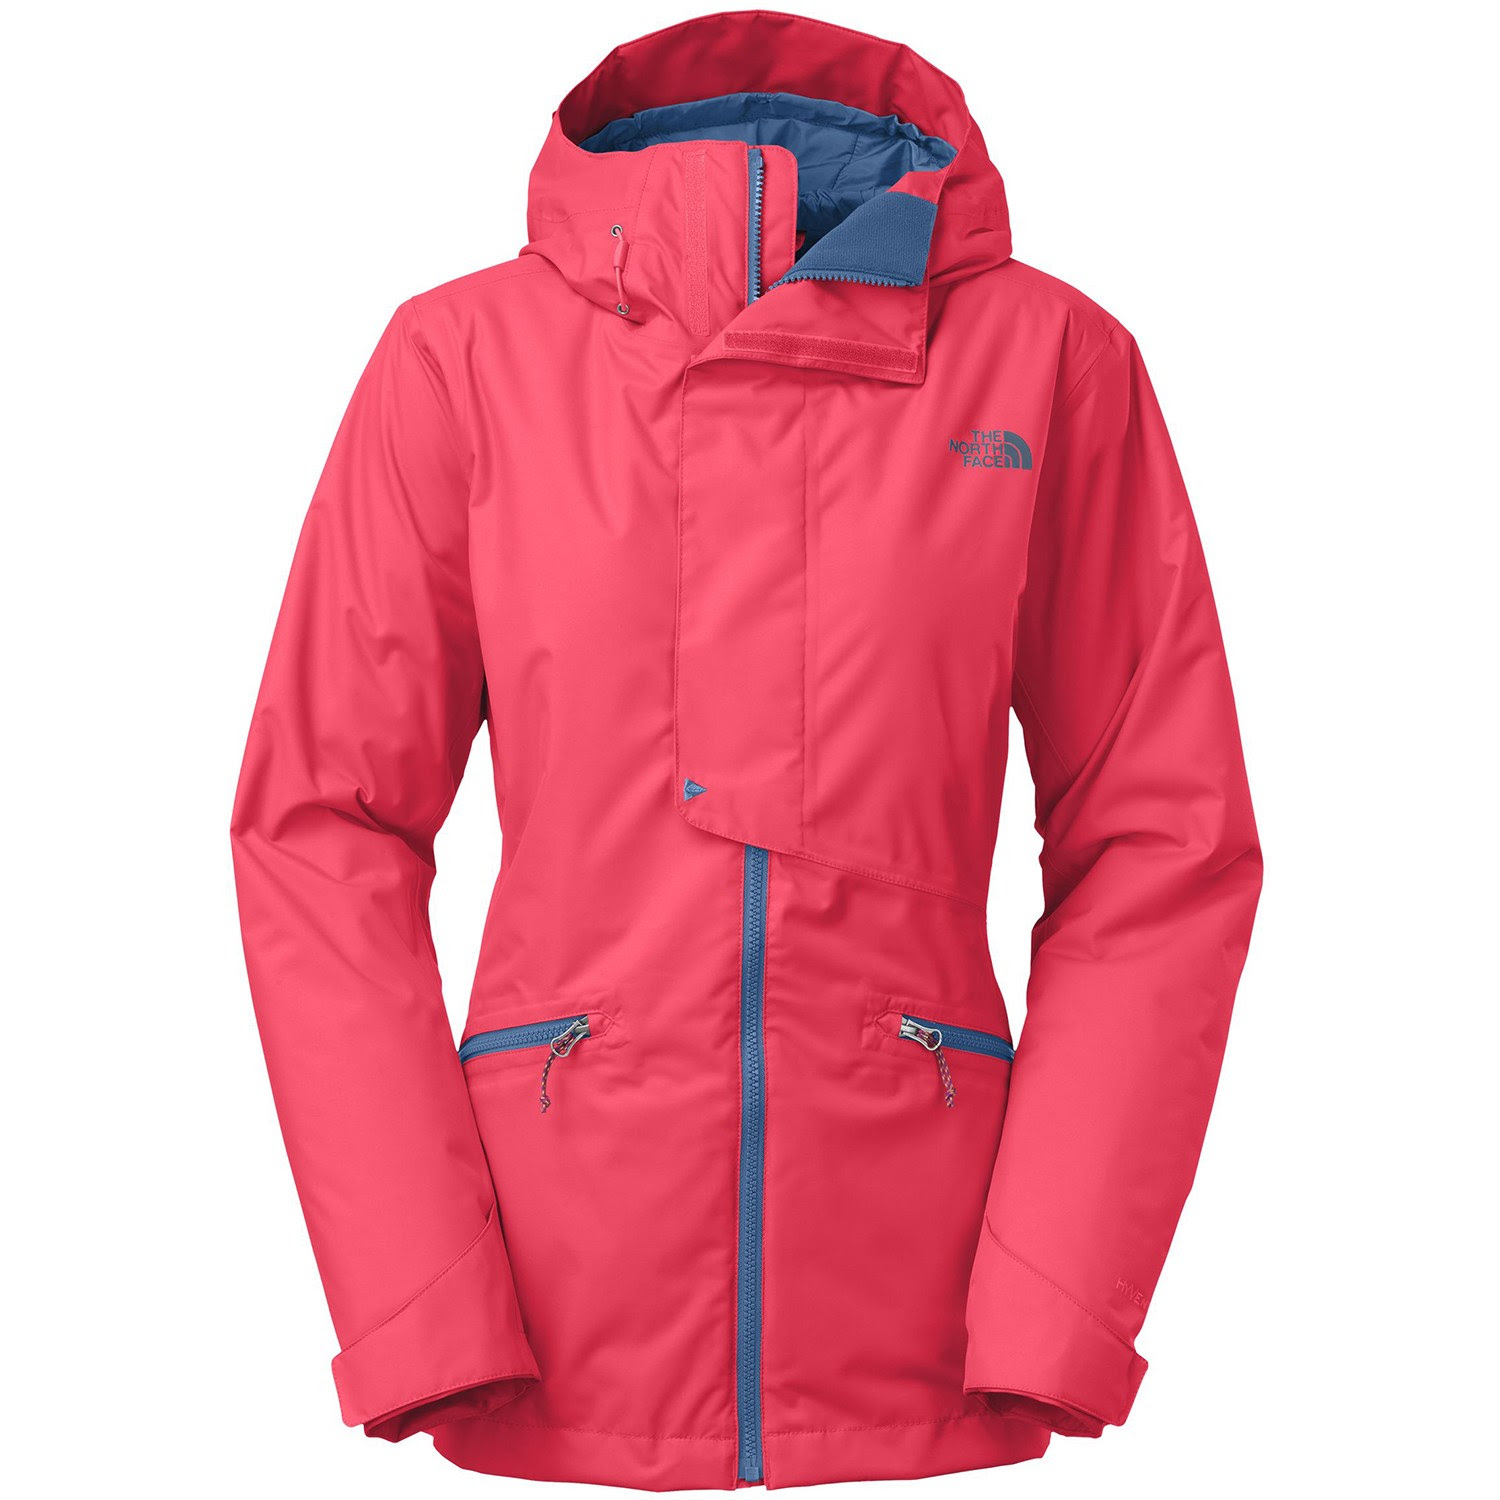 Coats: Free Shipping on orders over $45 at Stay warm with our great selection of Women's coats from forex-2016.ga Your Online Women's Outerwear Store! Get 5% in rewards with Club O!